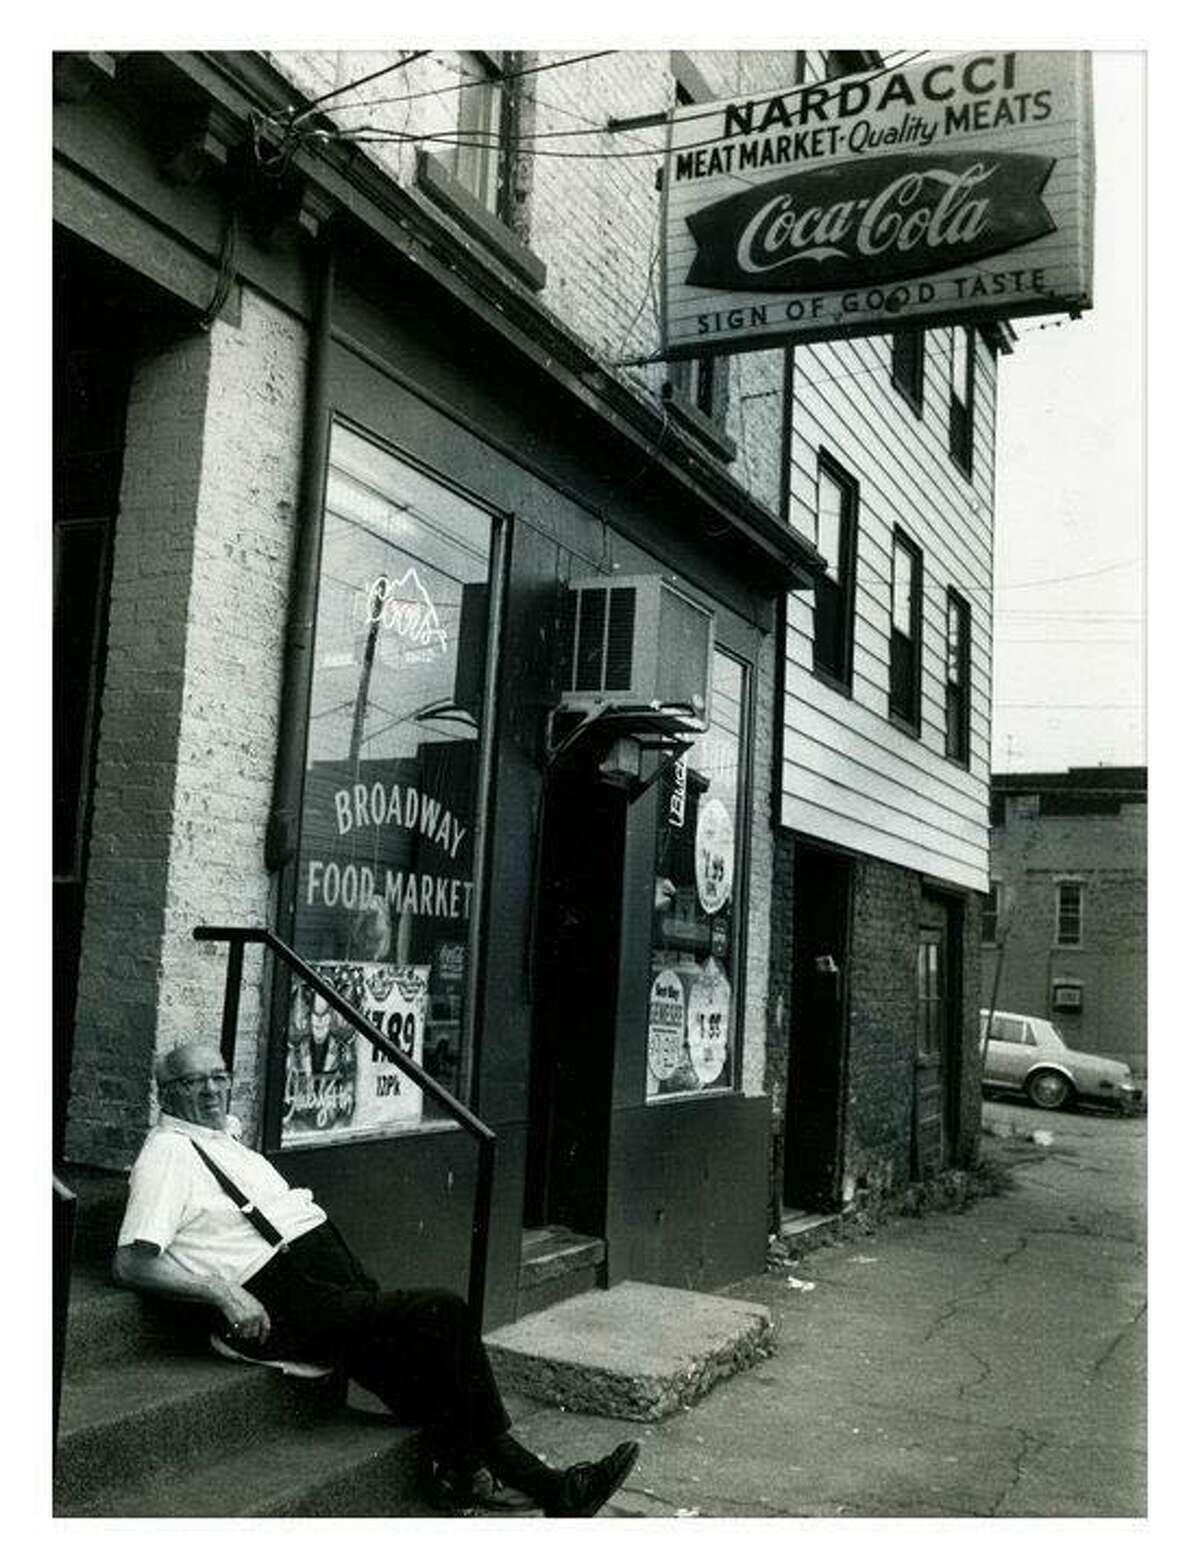 My grandparents owned a corner store and butcher shop on Broadway in Rensselaer. I stocked shelves and wasn't allowed to touch the deli slicer or adding machine.